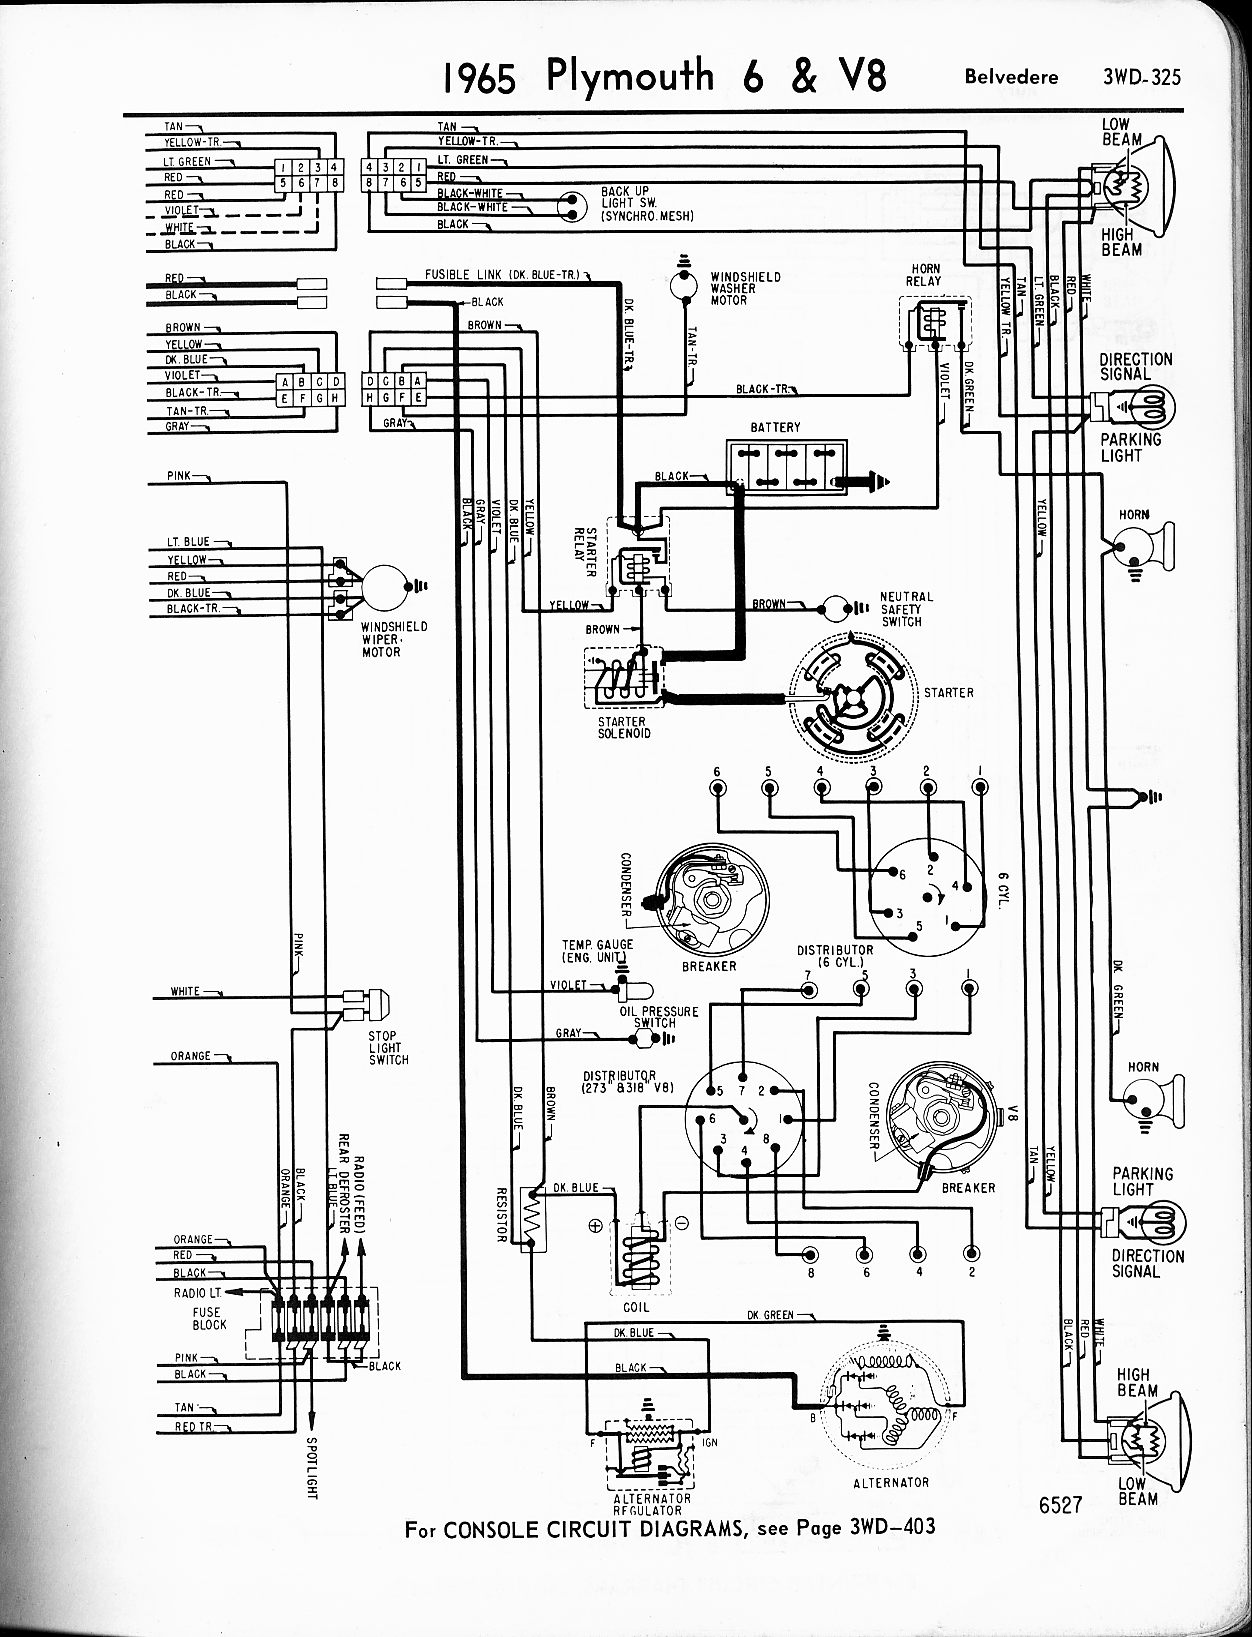 MWire5765 325 1956 1965 plymouth wiring the old car manual project 1975 plymouth duster wiring diagram at readyjetset.co